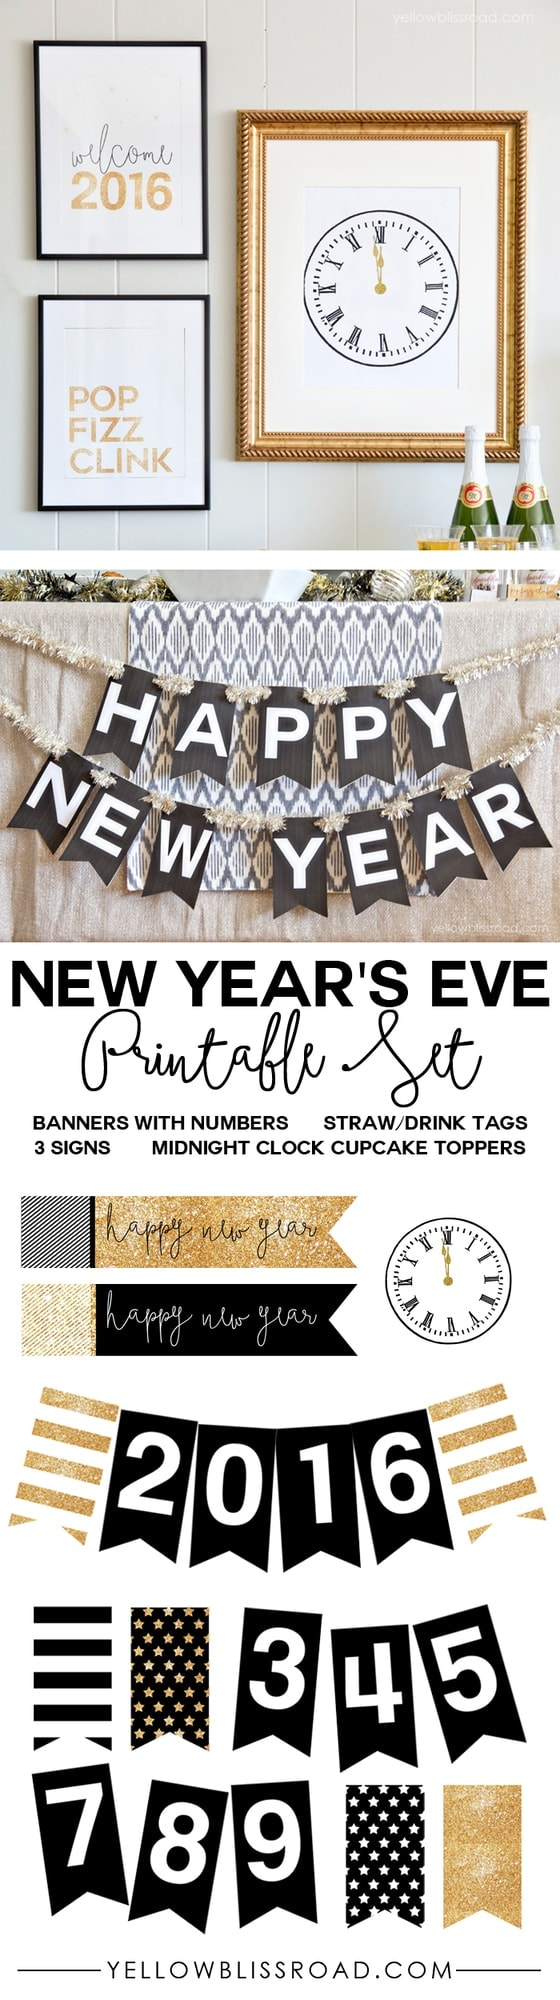 new years eve printable set with banners tags cupcake toppers and signs in black